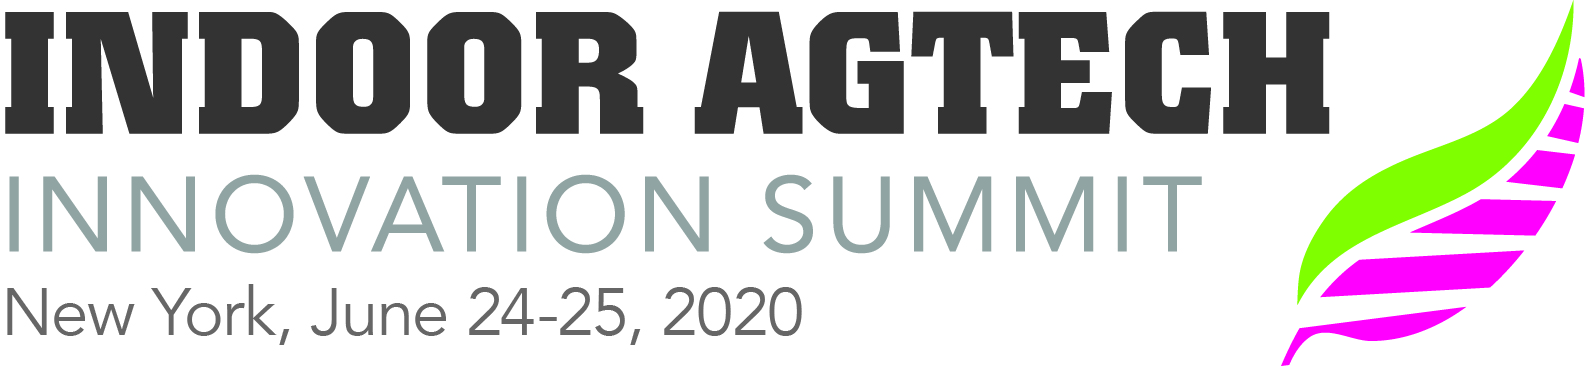 Indoor_AgTech_NYC_2020_logo.jpg